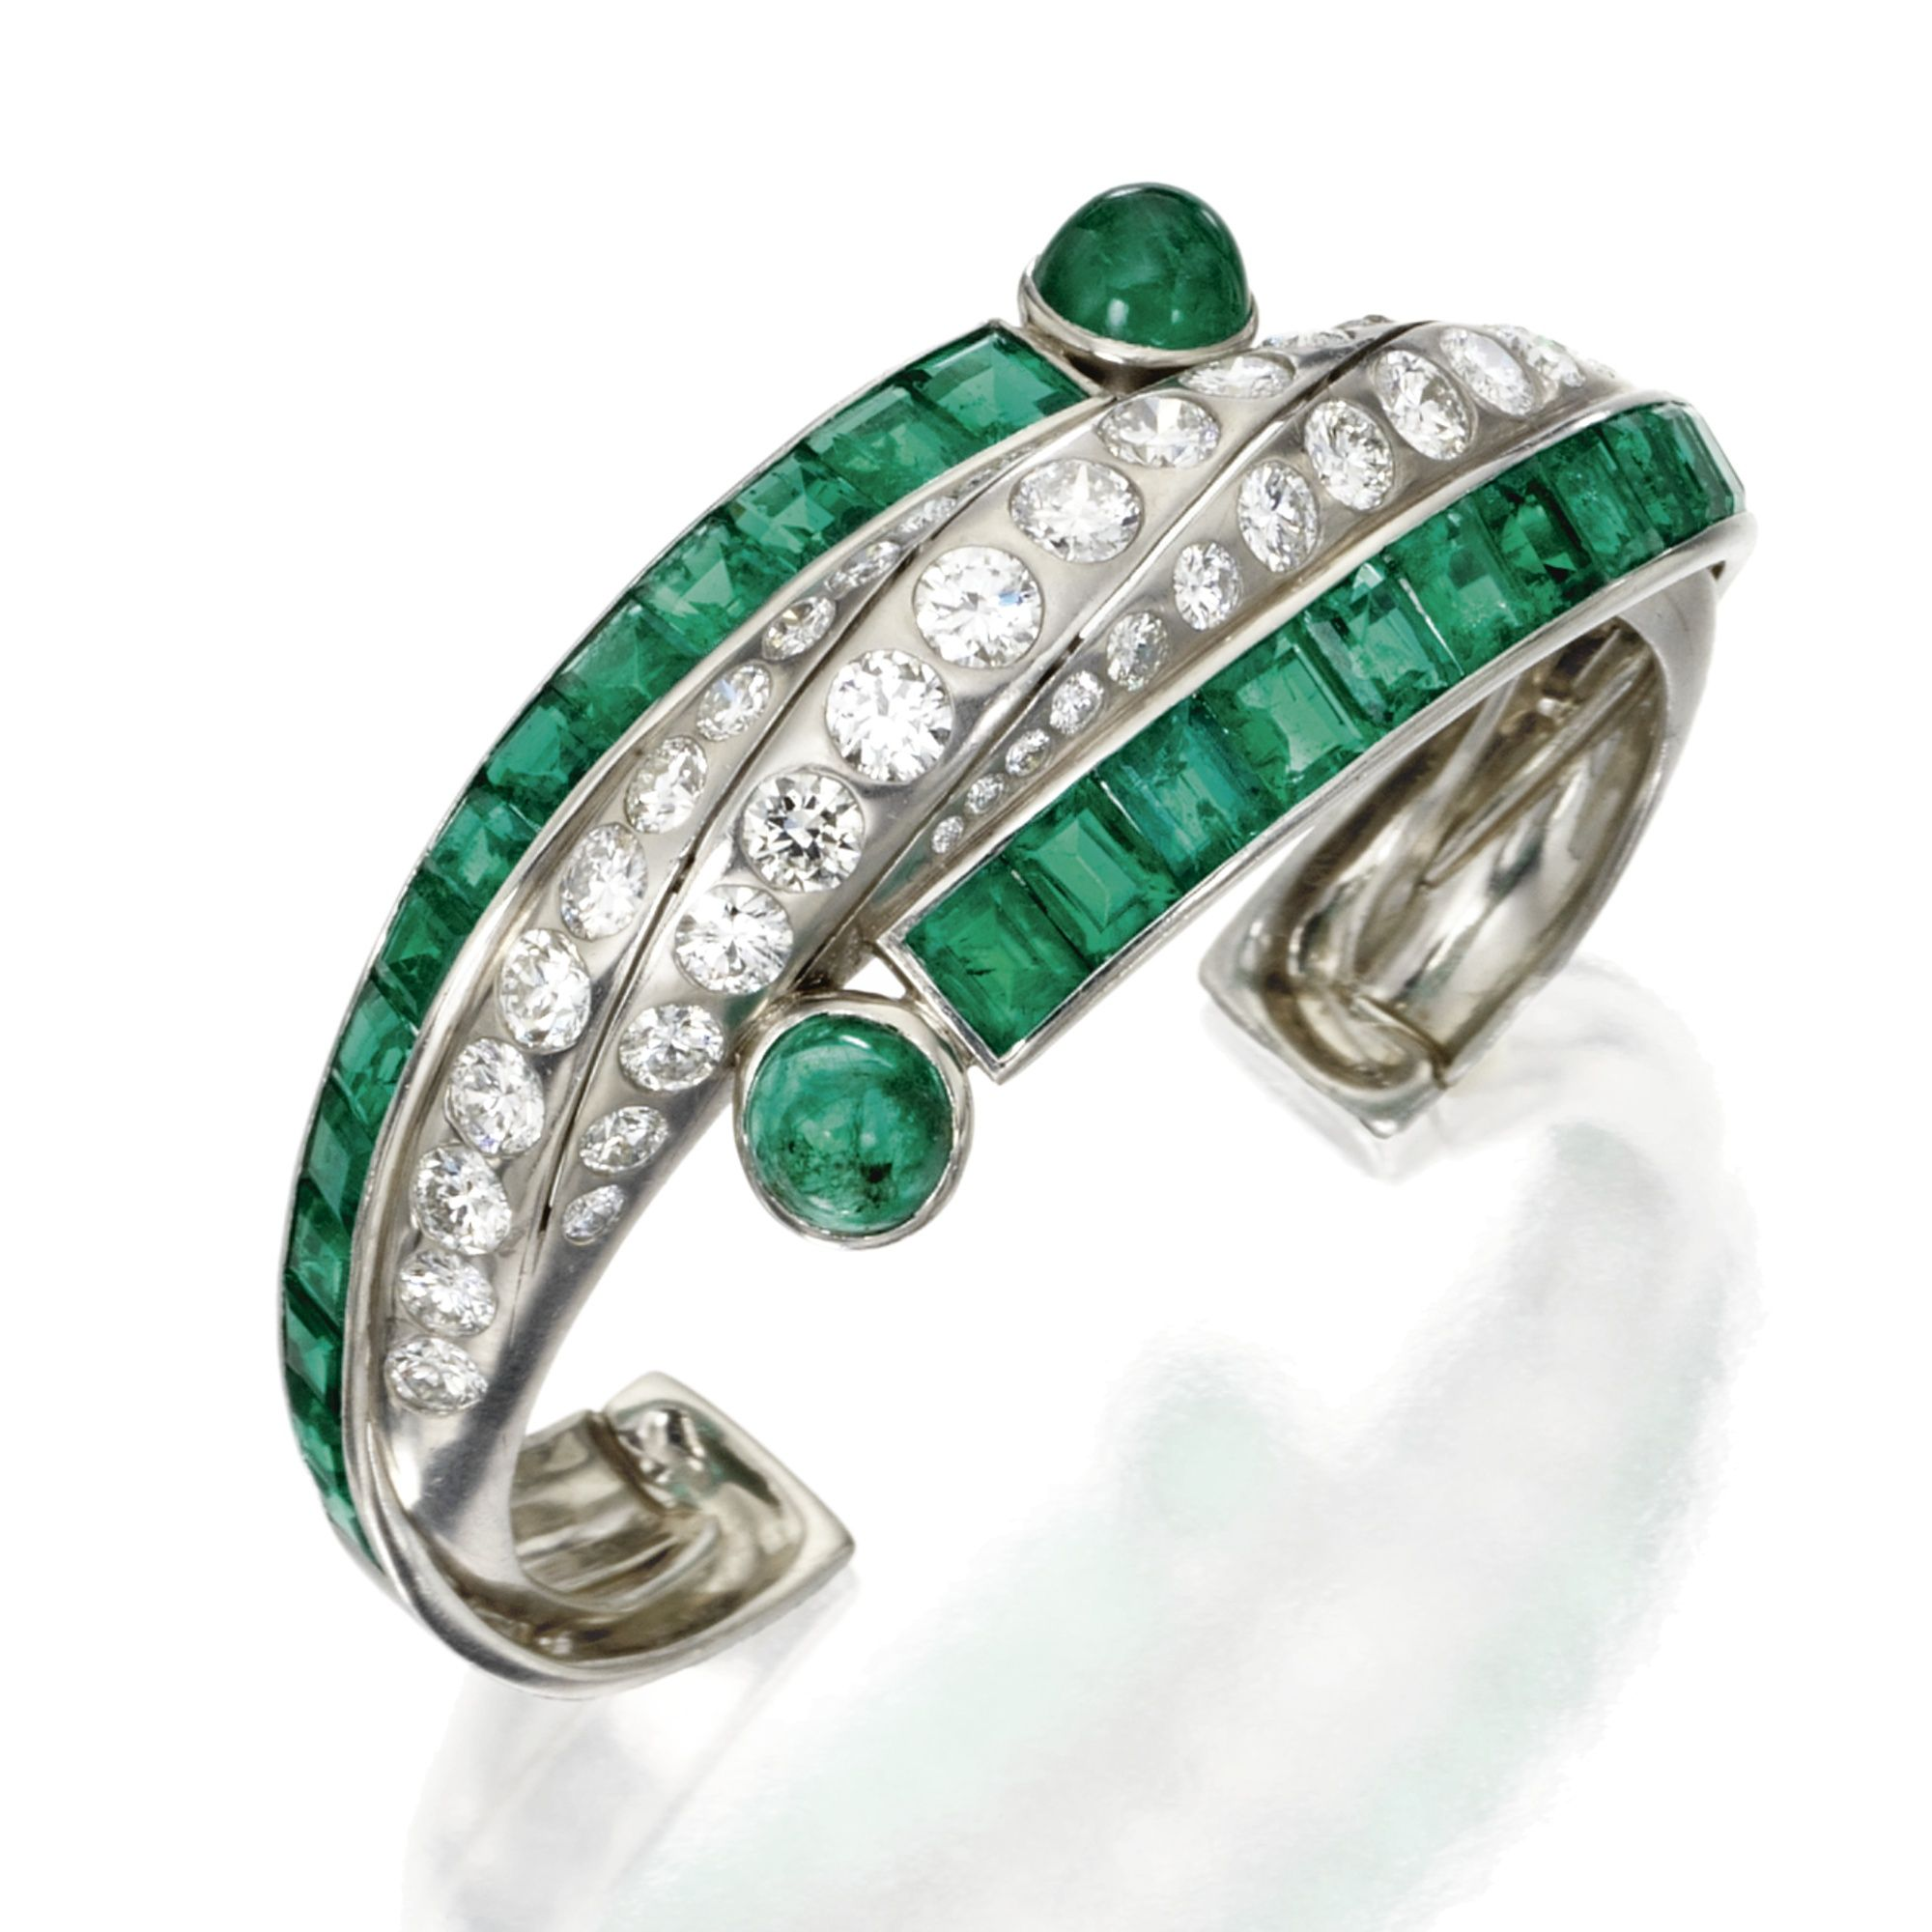 Art Moderne Platinum, Emerald and Diamond Cuff Bracelet, Circa 1930 art deco